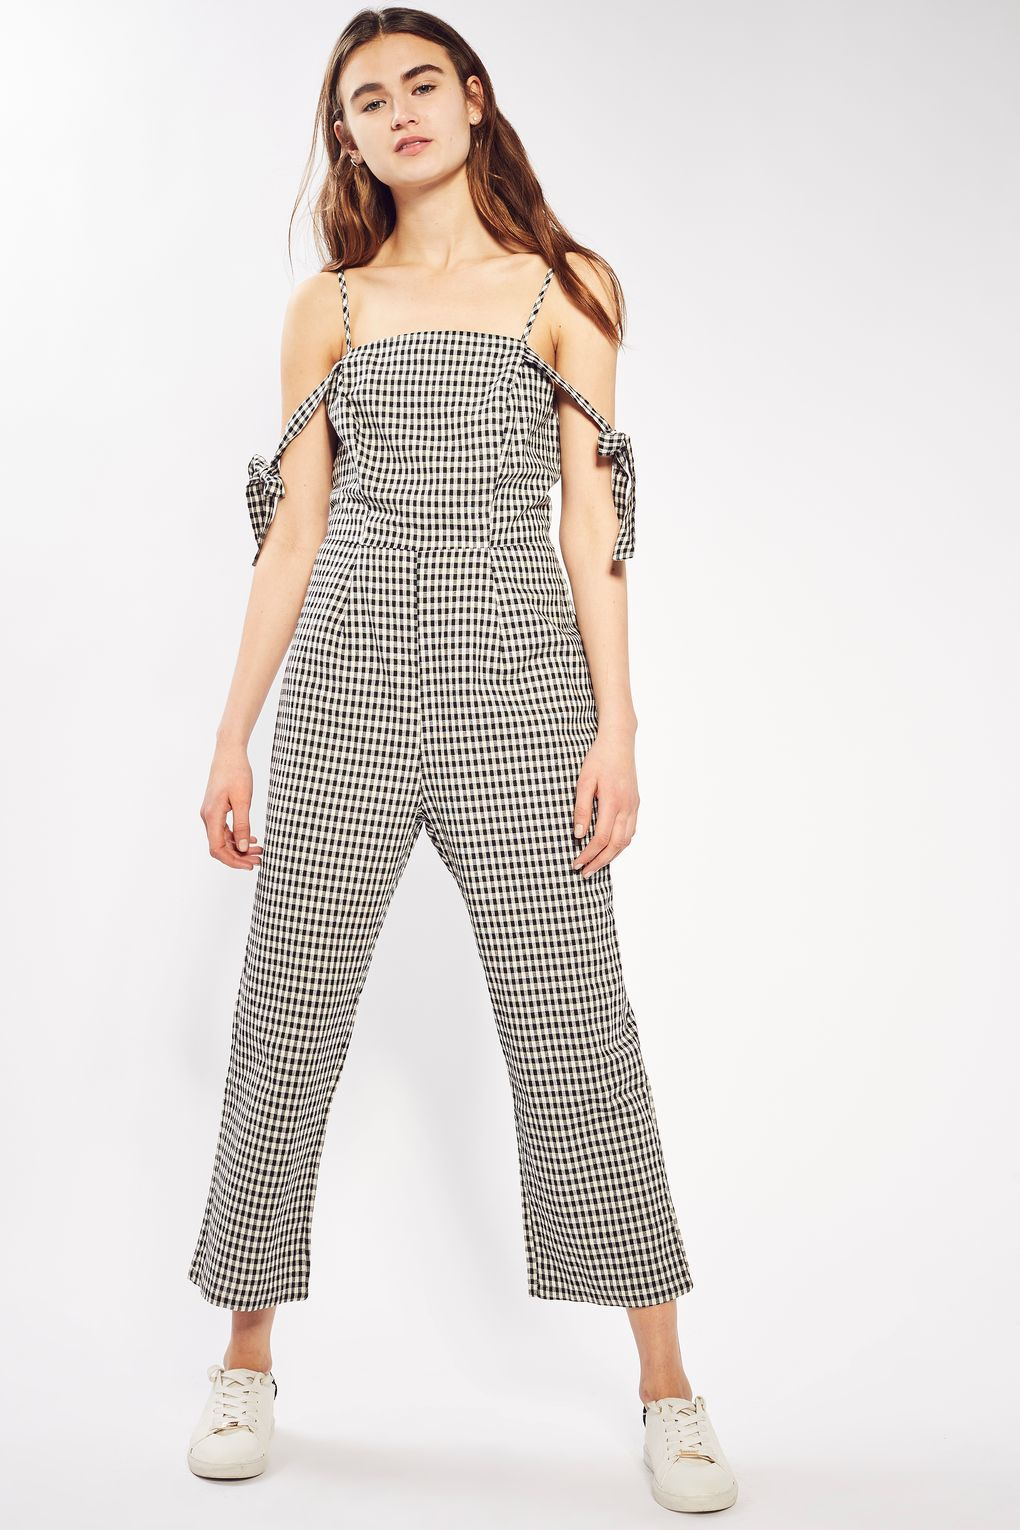 00f19e5949   Gingham Check Jumpsuit by Glamorous - Playsuits   Jumpsuits - Clothing